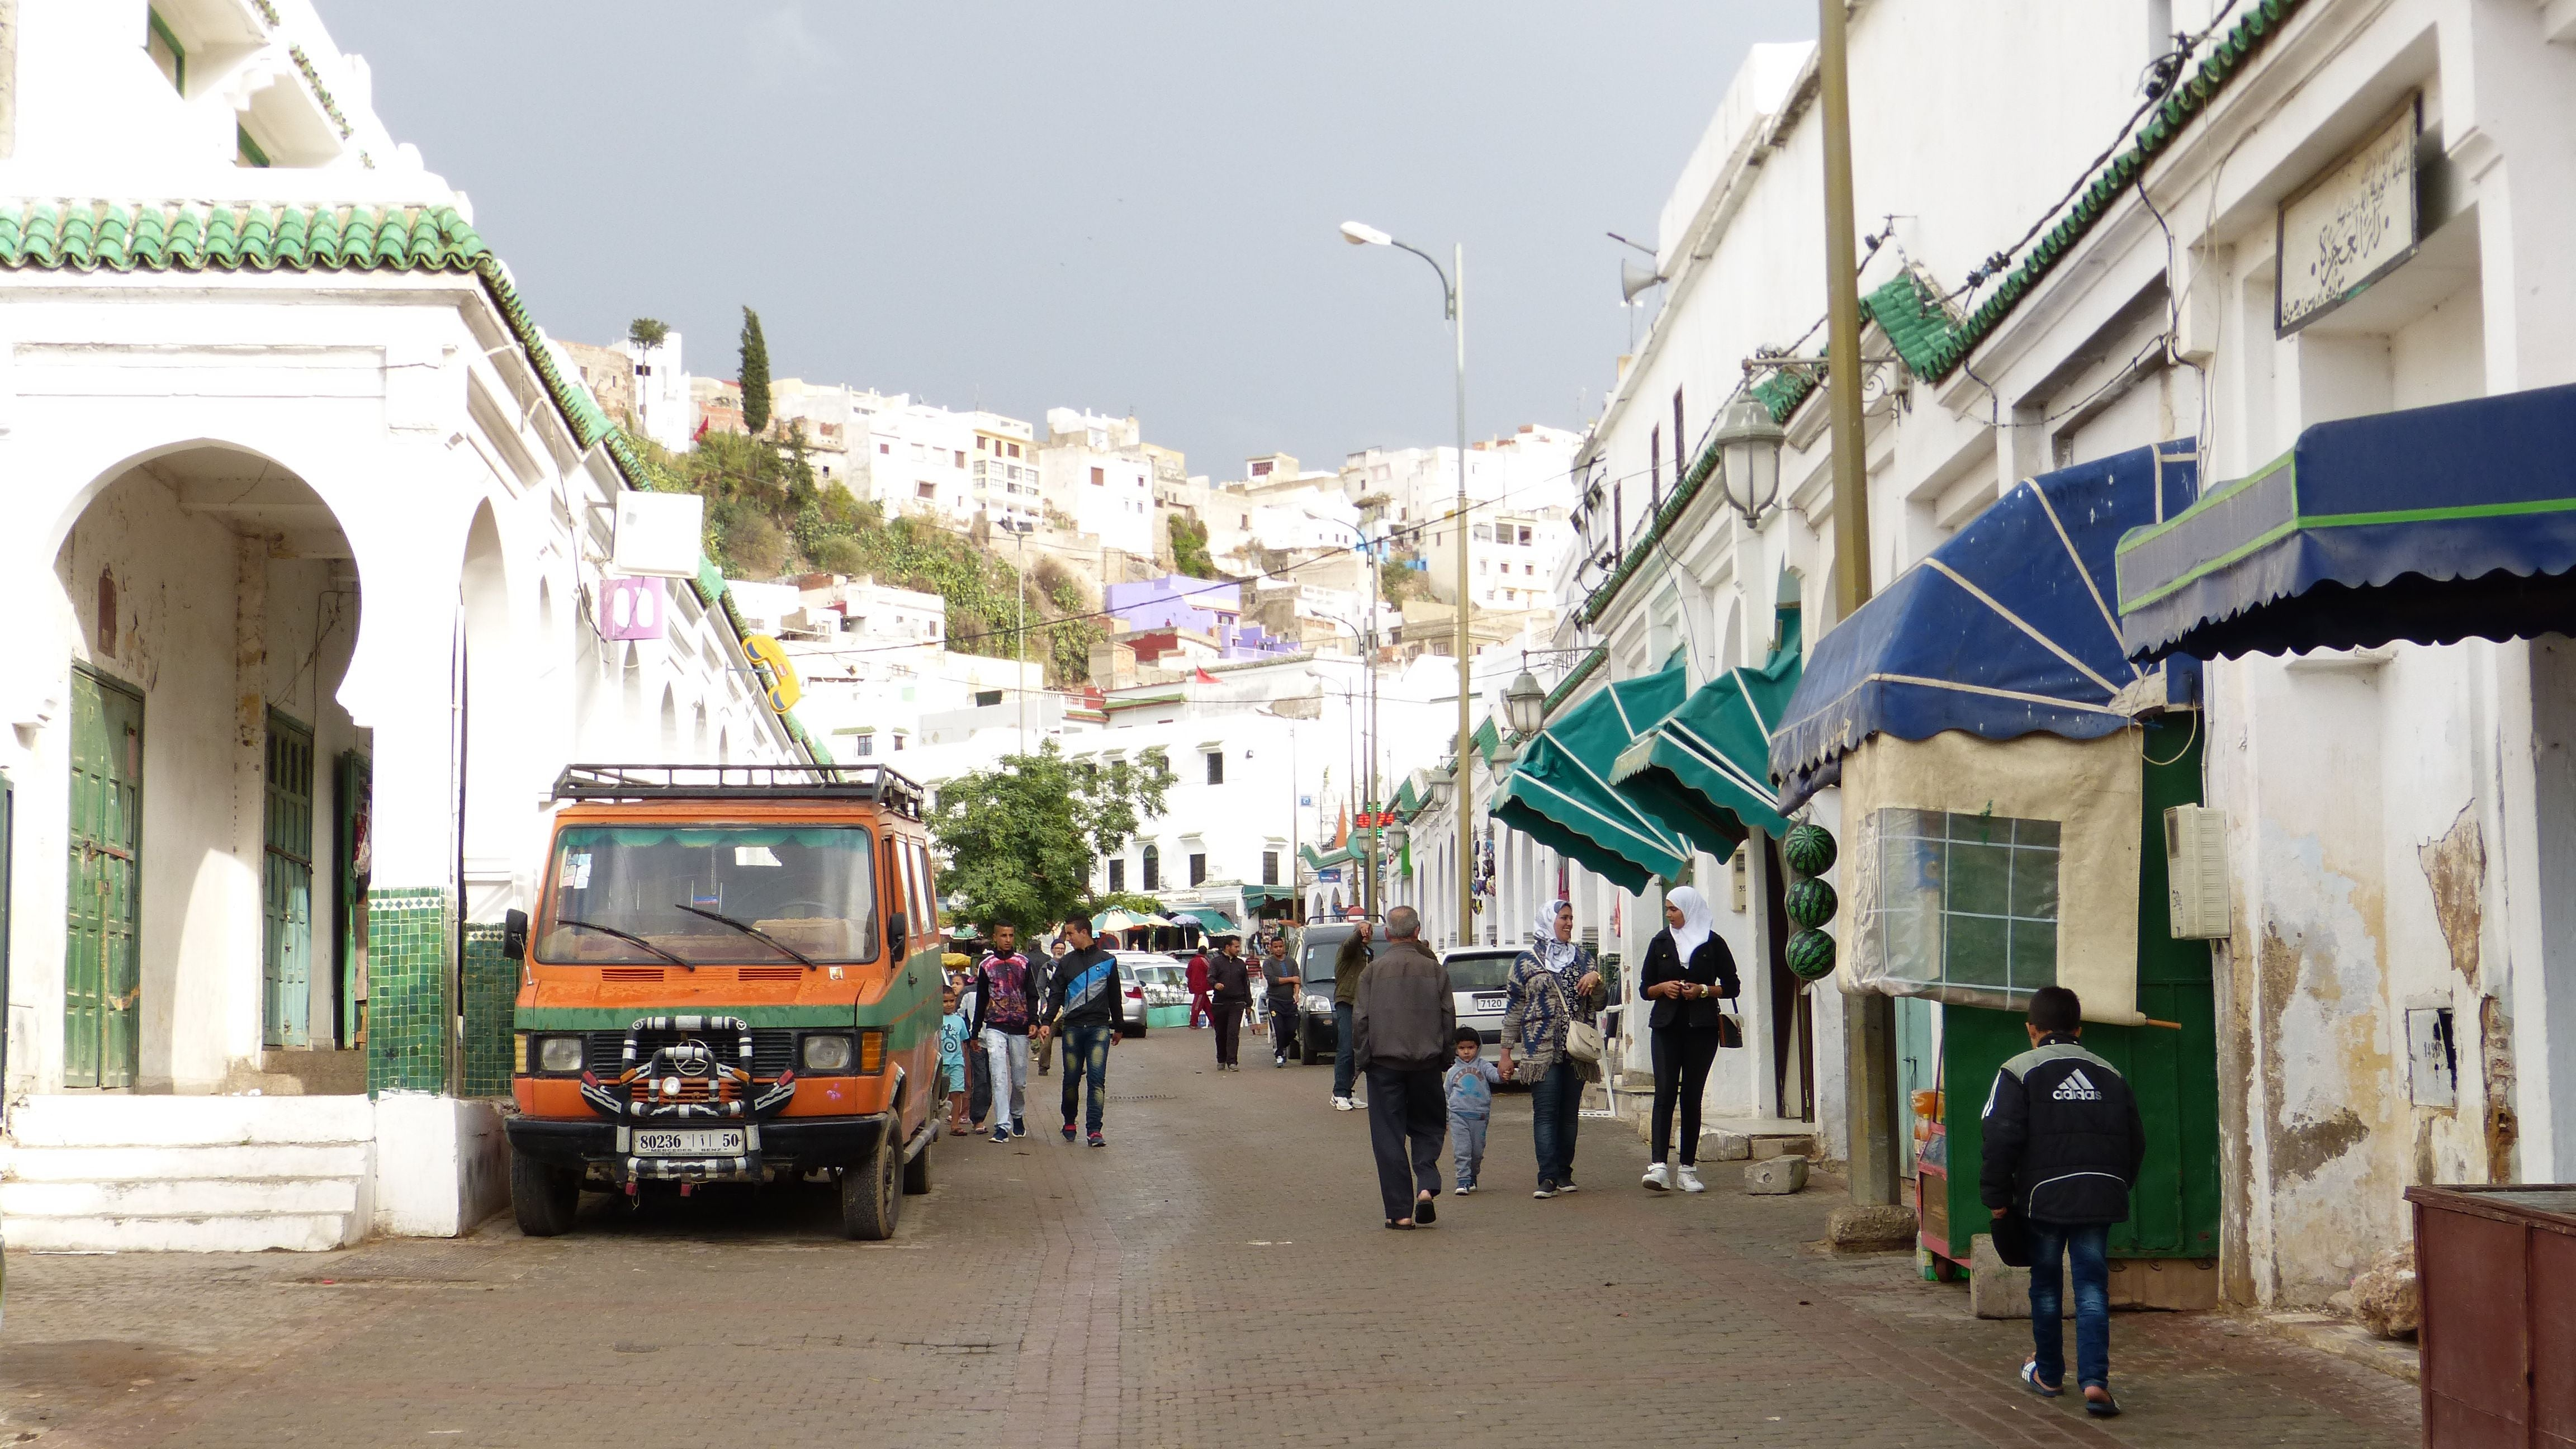 Calle Moulay Idriss